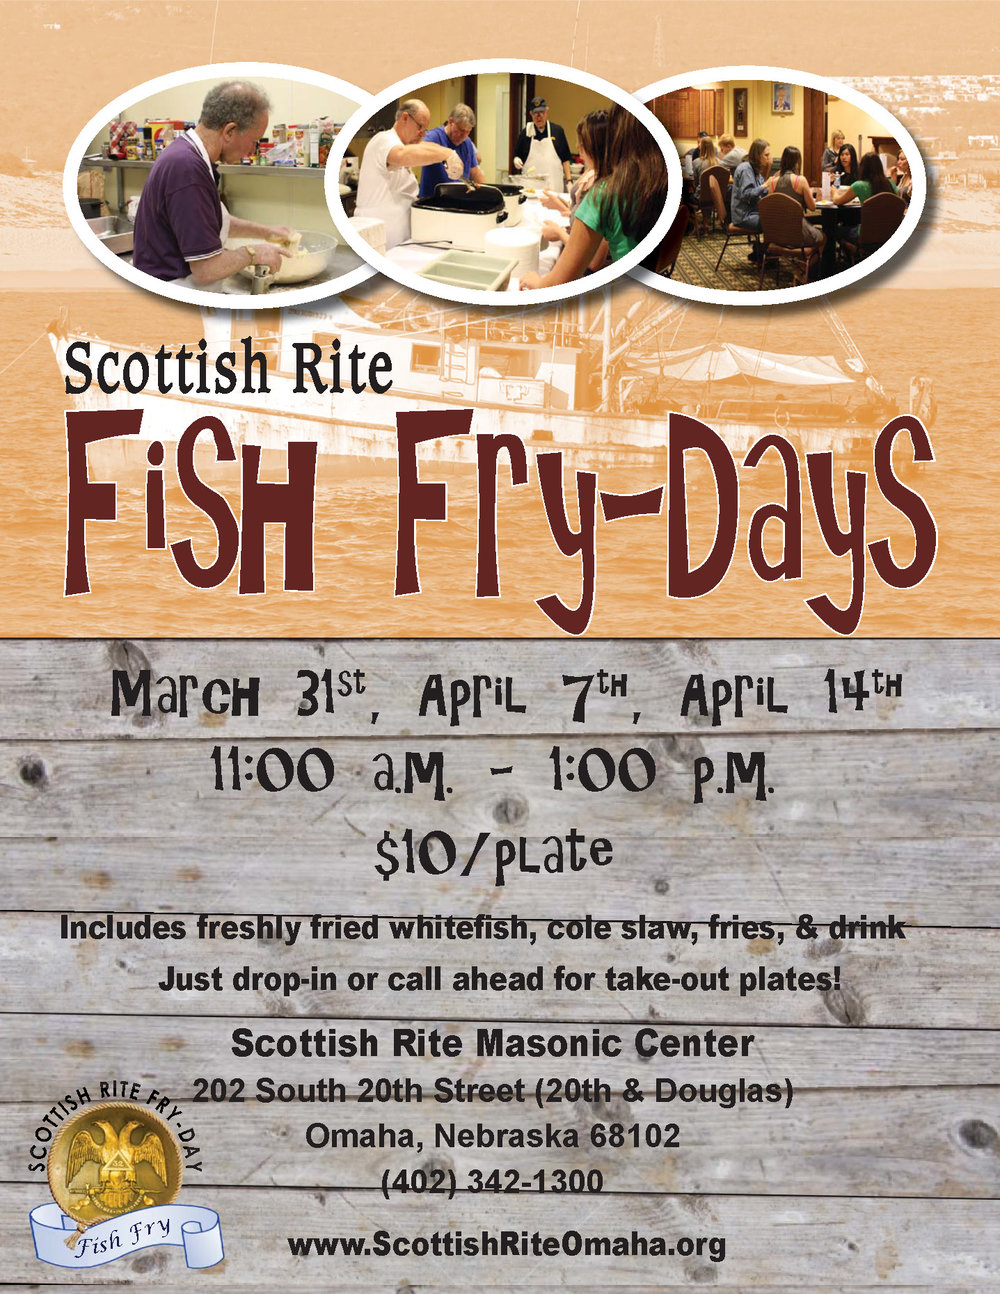 Click the above image to download a PDF flier of the fish fry flier.